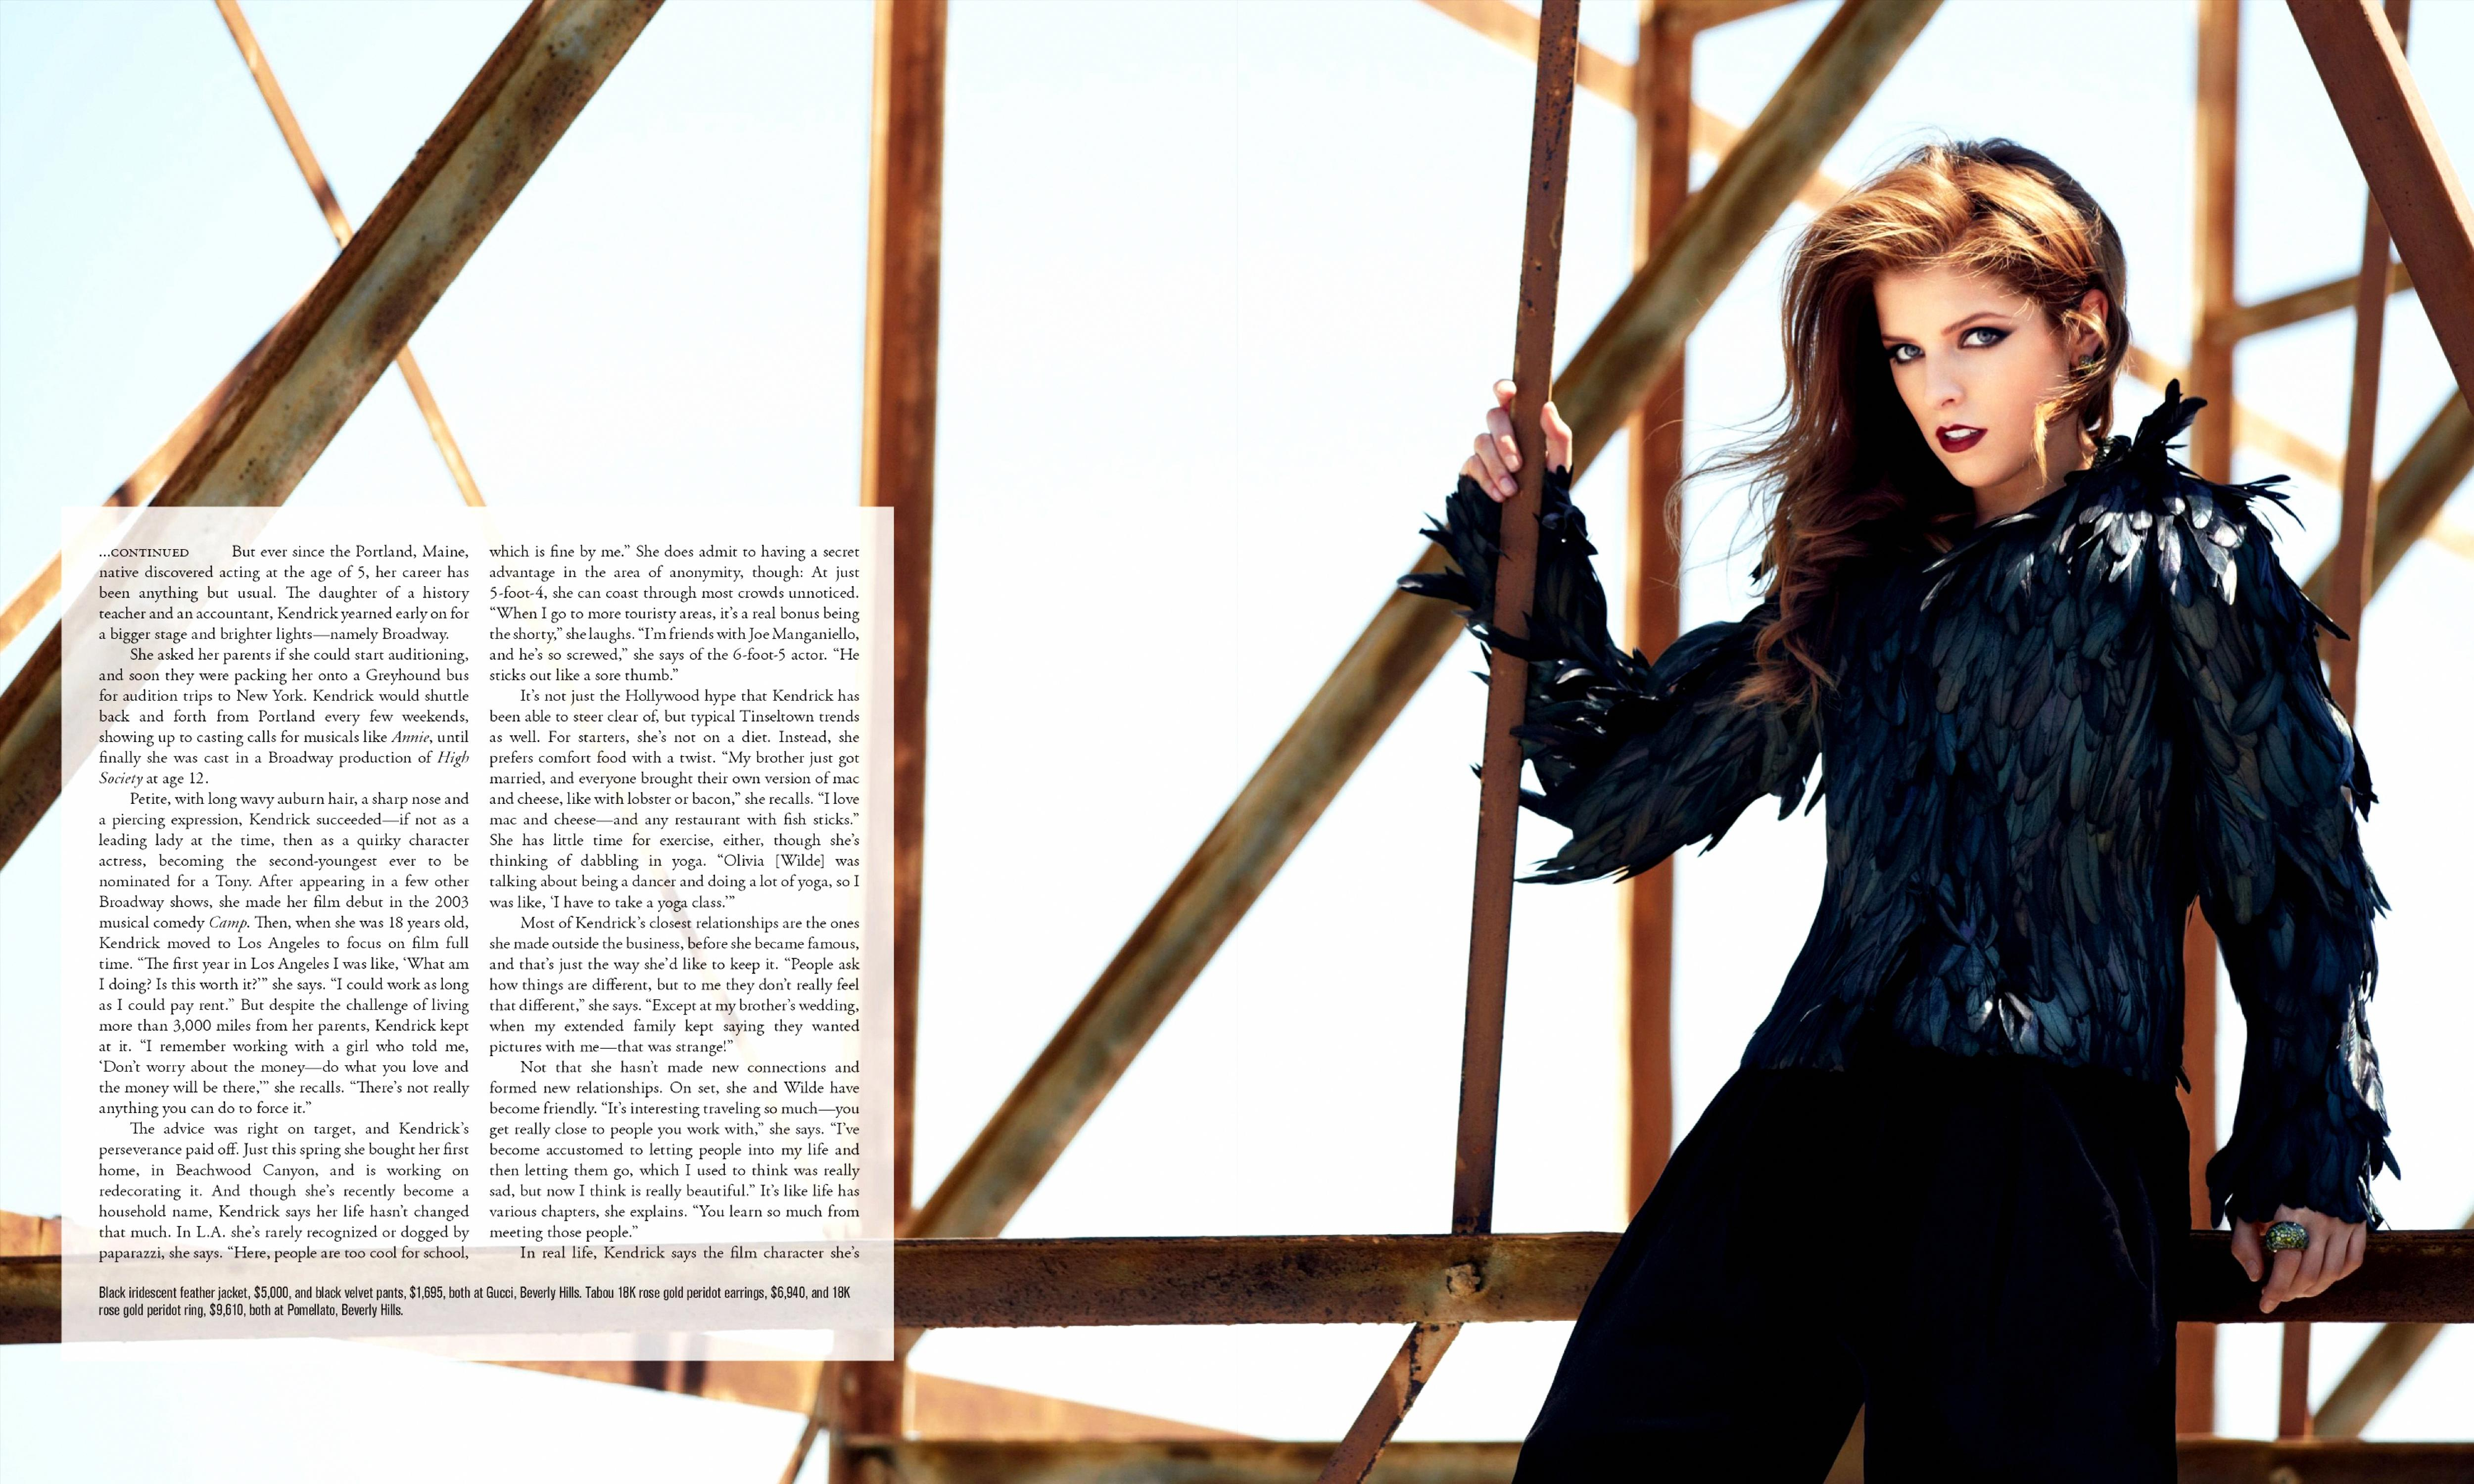 413829724_Anna_Kendrick_Angeleno_Magazine_September_2012_6_122_437lo.jpg